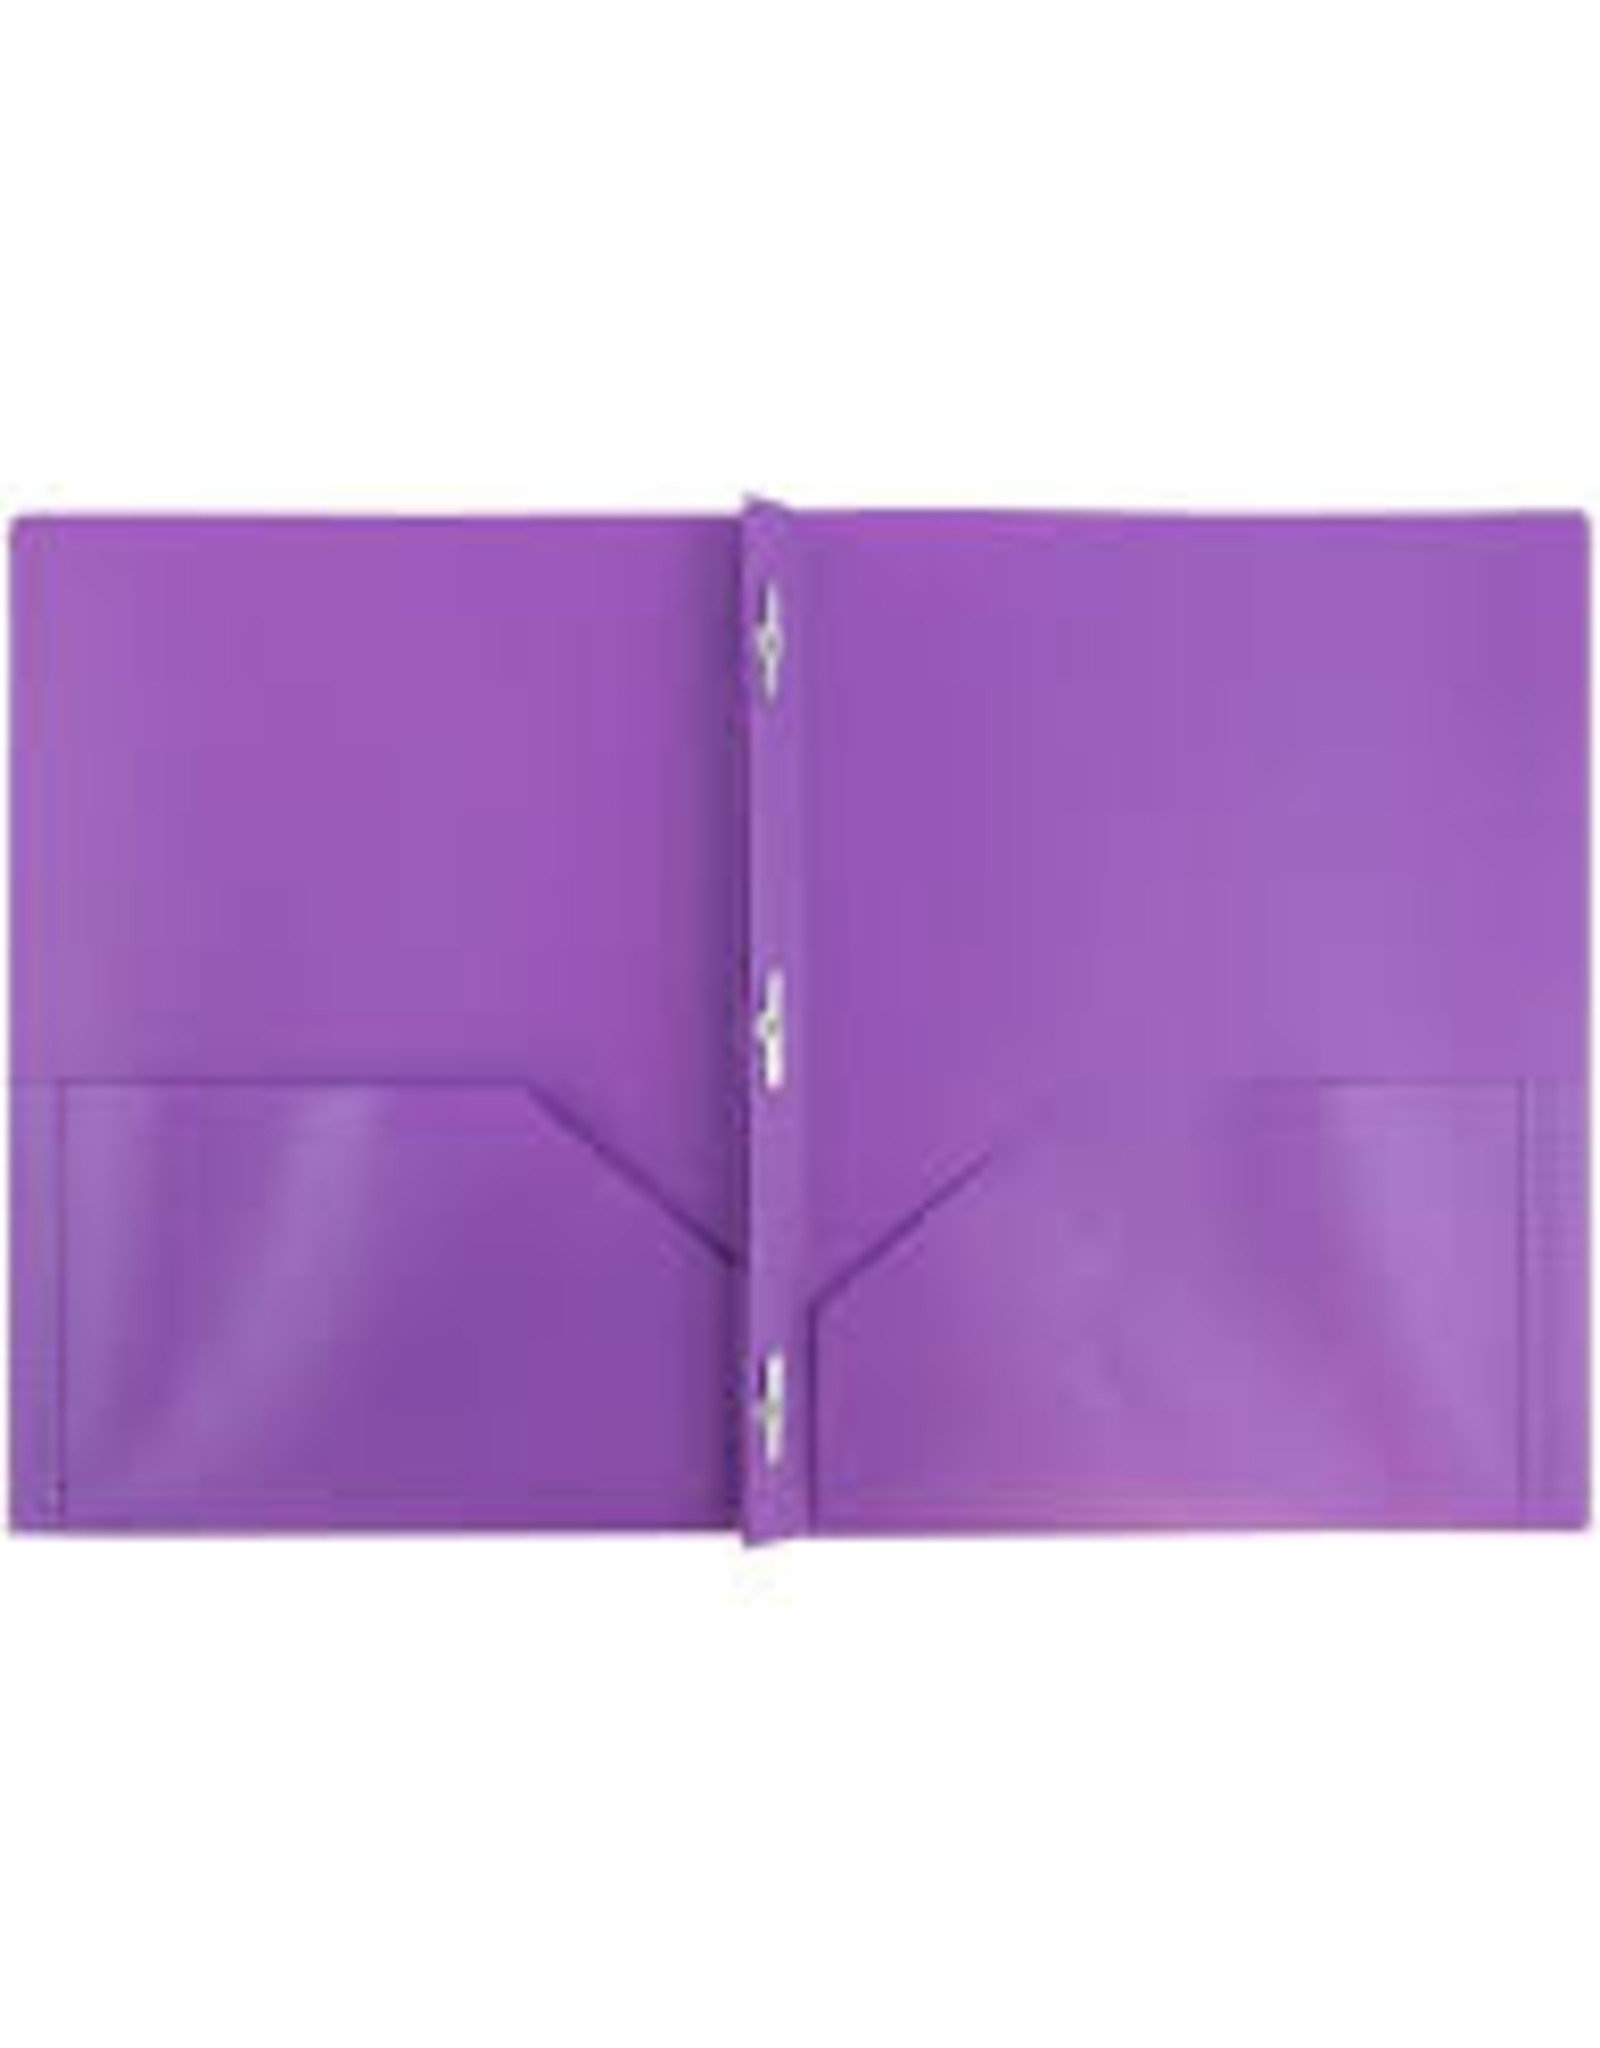 Office Depot Plastic Folder with Prongs